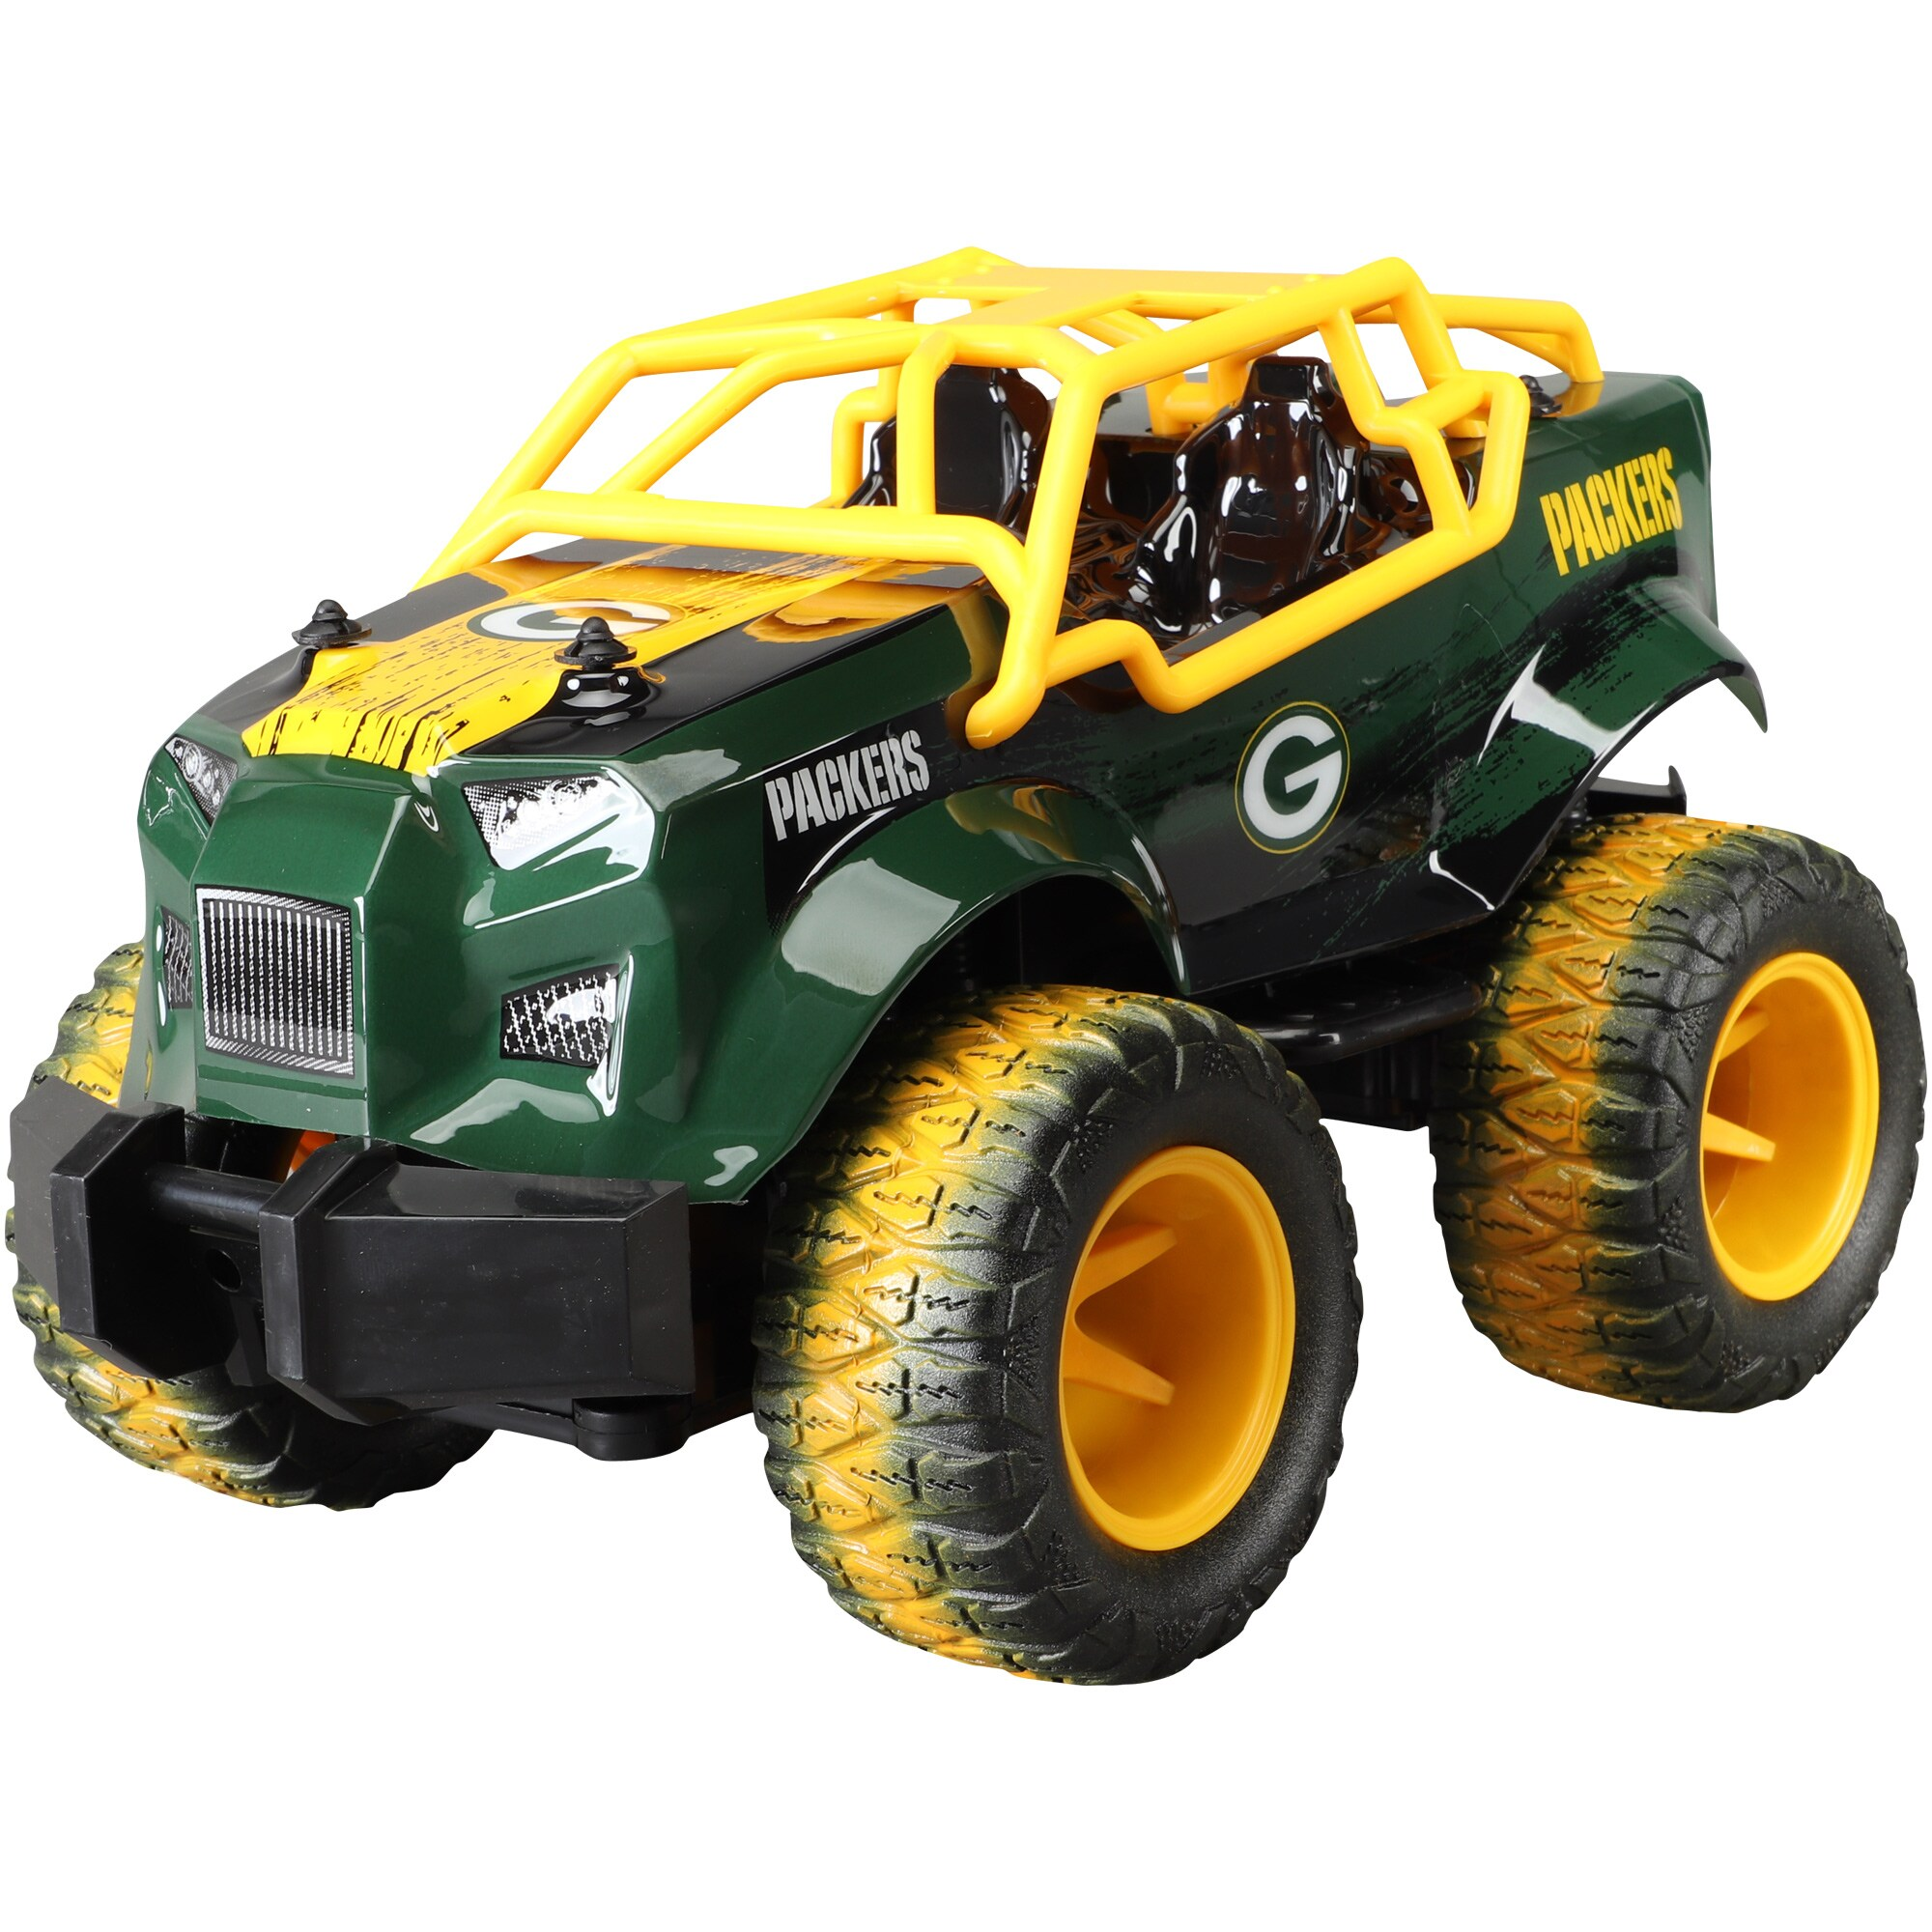 Green Bay Packers Monster Truck Toy